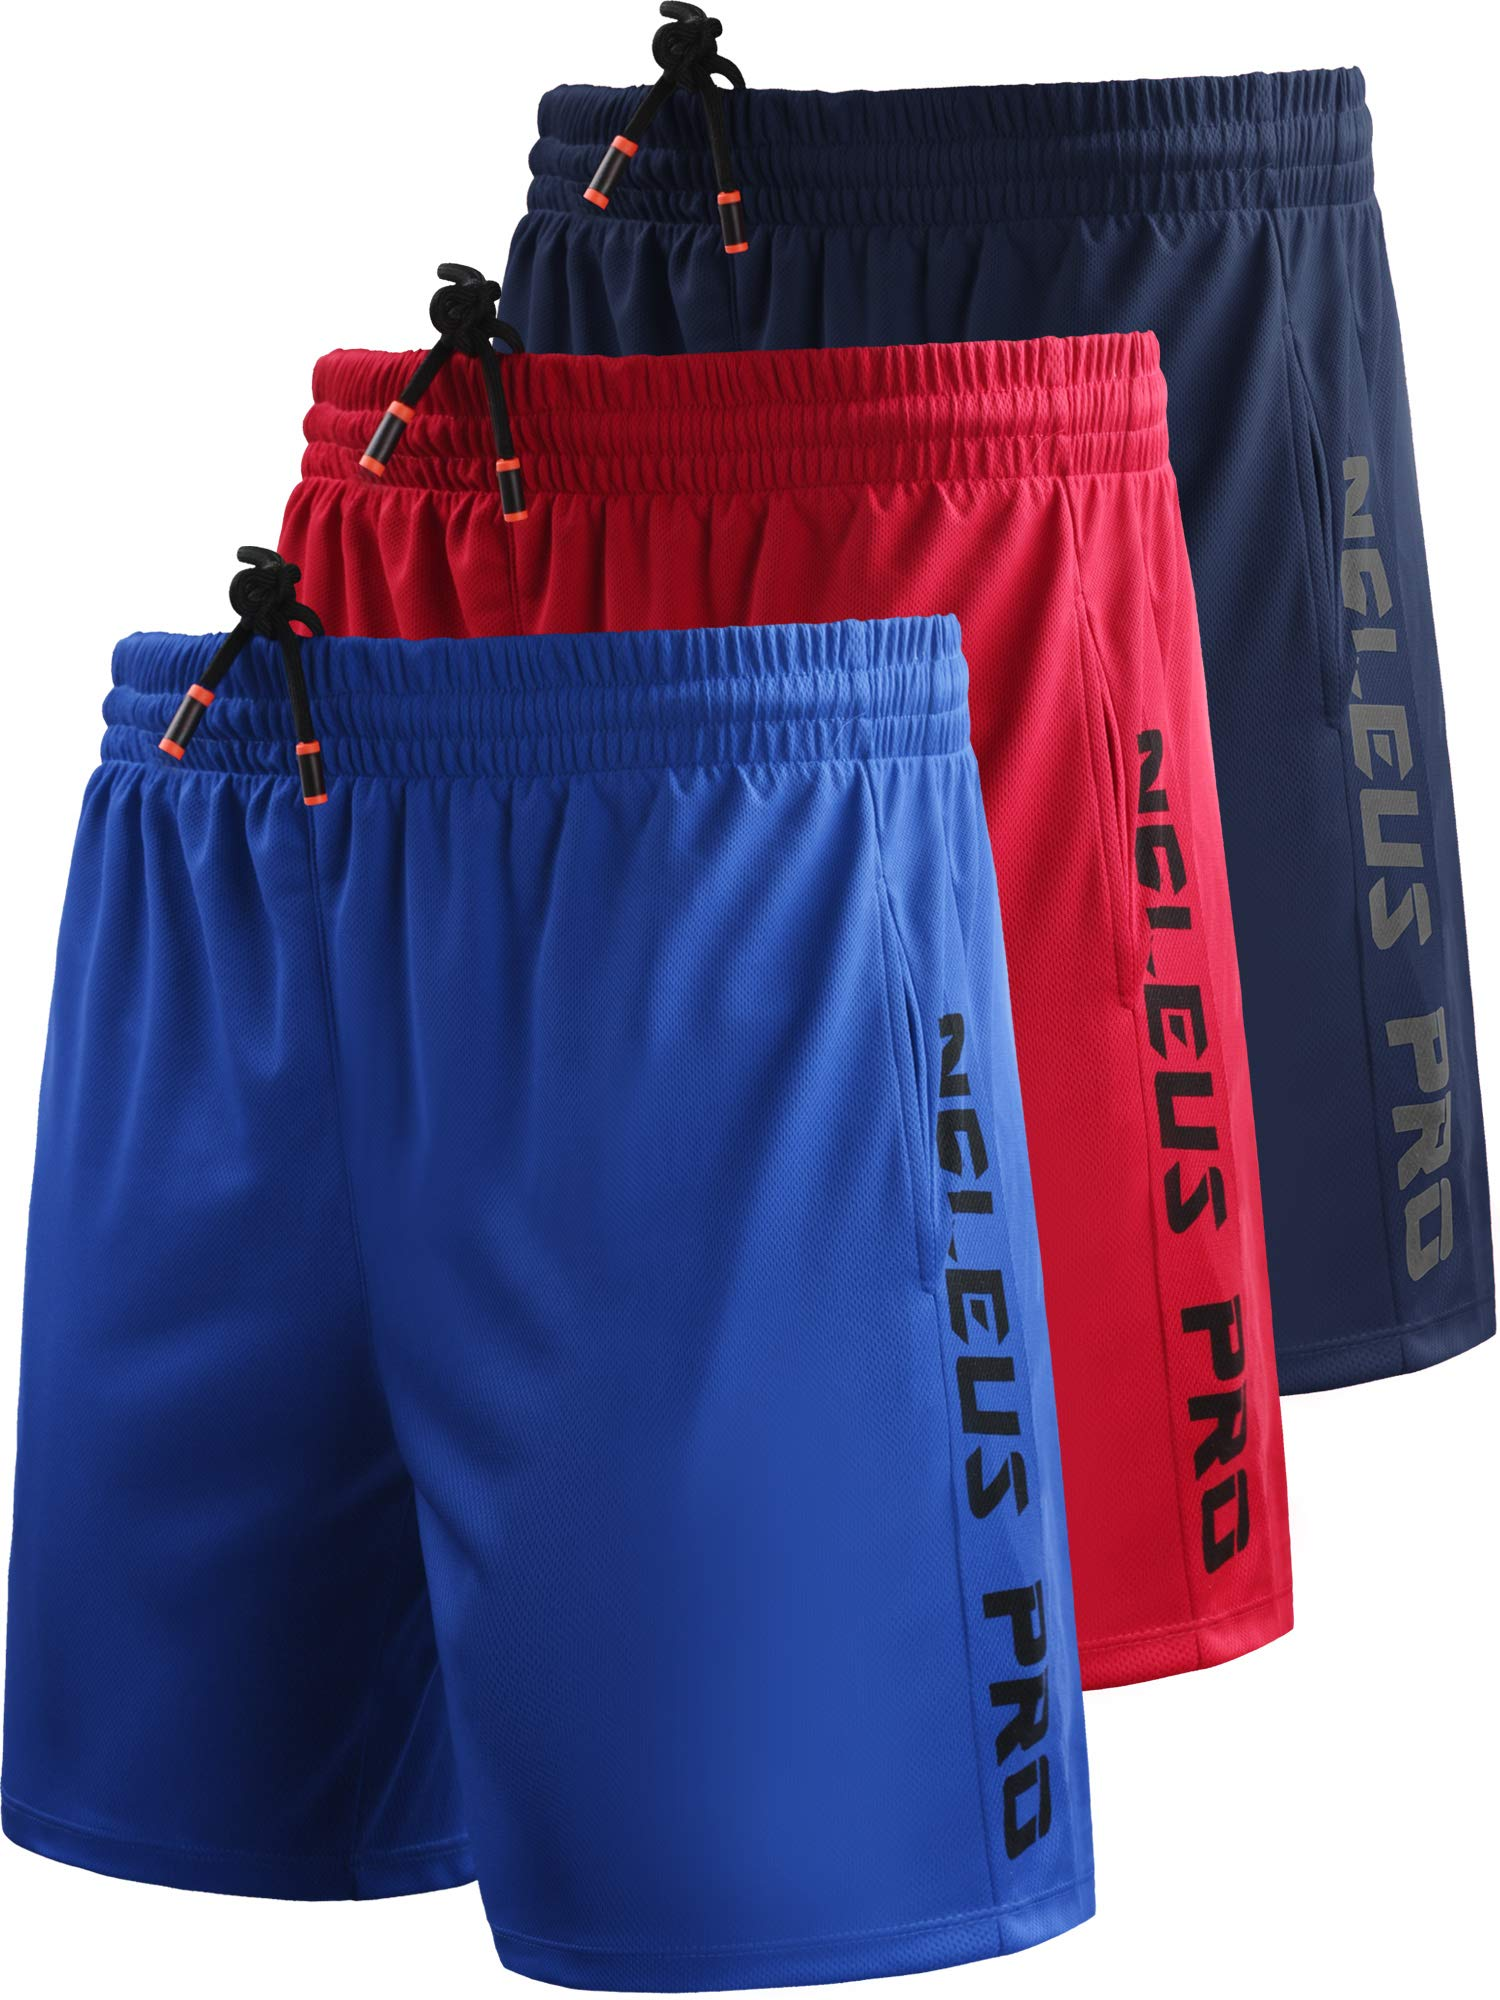 Neleus Men's 7'' Workout Running Shorts with Pockets,6056,3 Pack,Blue,Navy Blue,Red,S,EU M